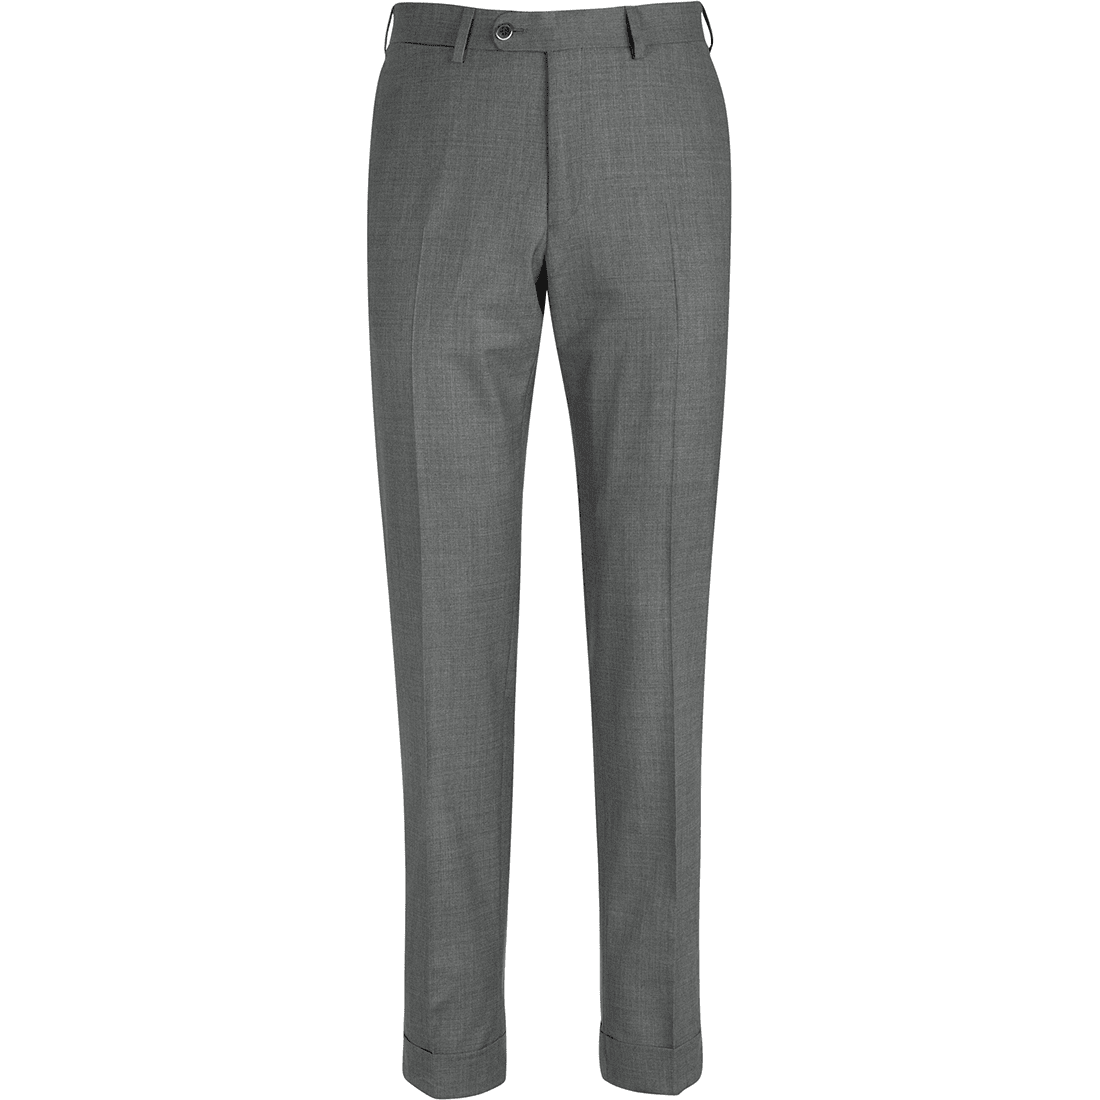 Smart Casual trousers